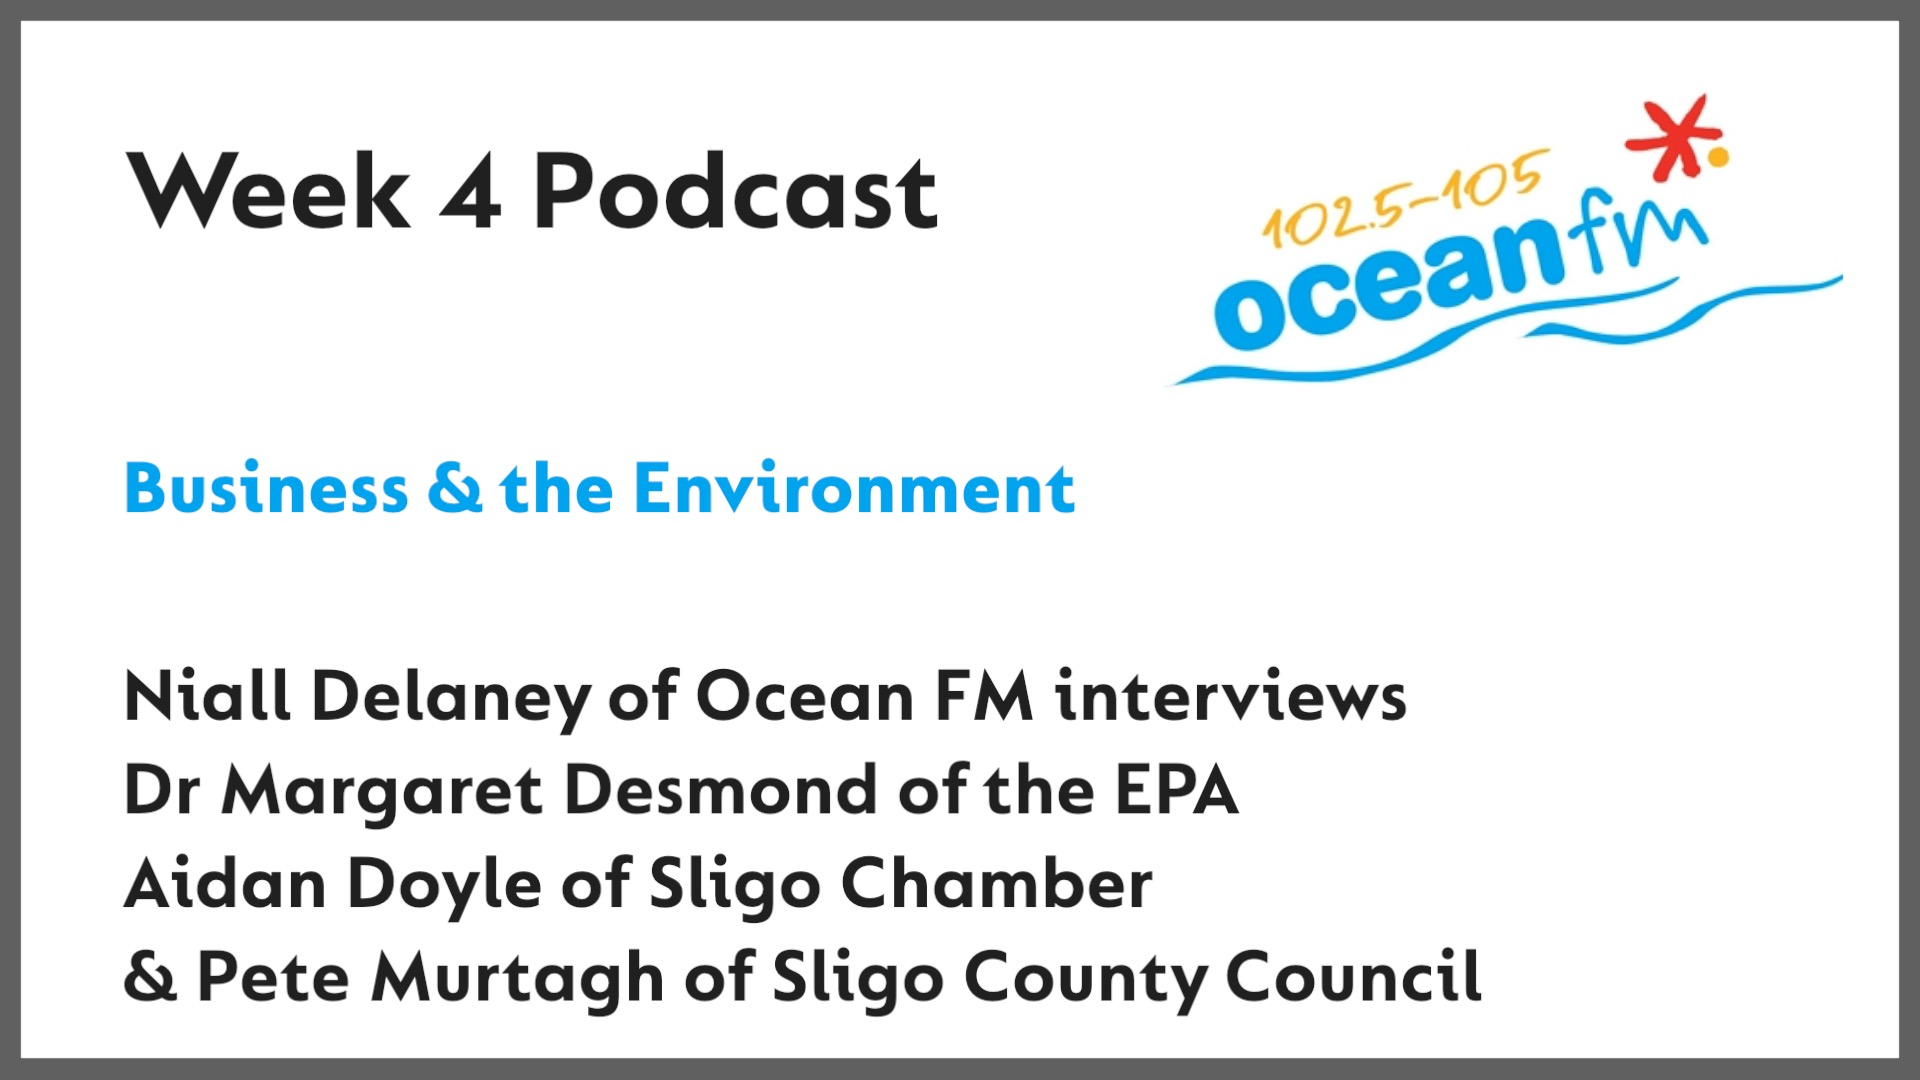 Business & the Environment - Interview on Ocean FM